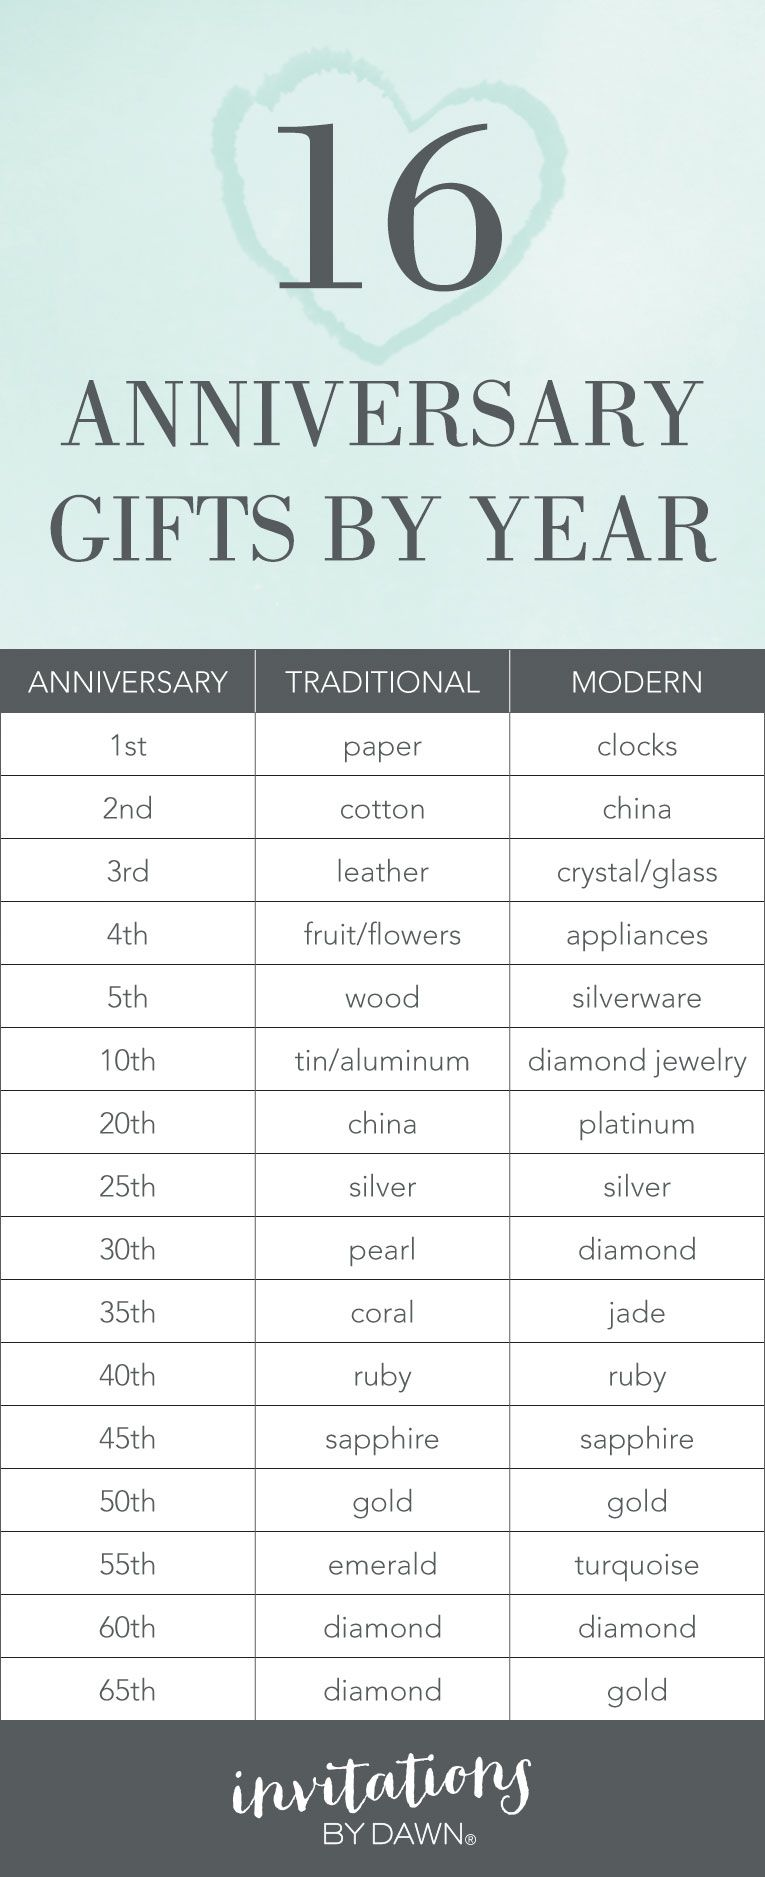 Wedding Anniversary Gifts By Year 16th Wedding Anniversary Year Anniversary Gifts Modern Anniversary Gifts